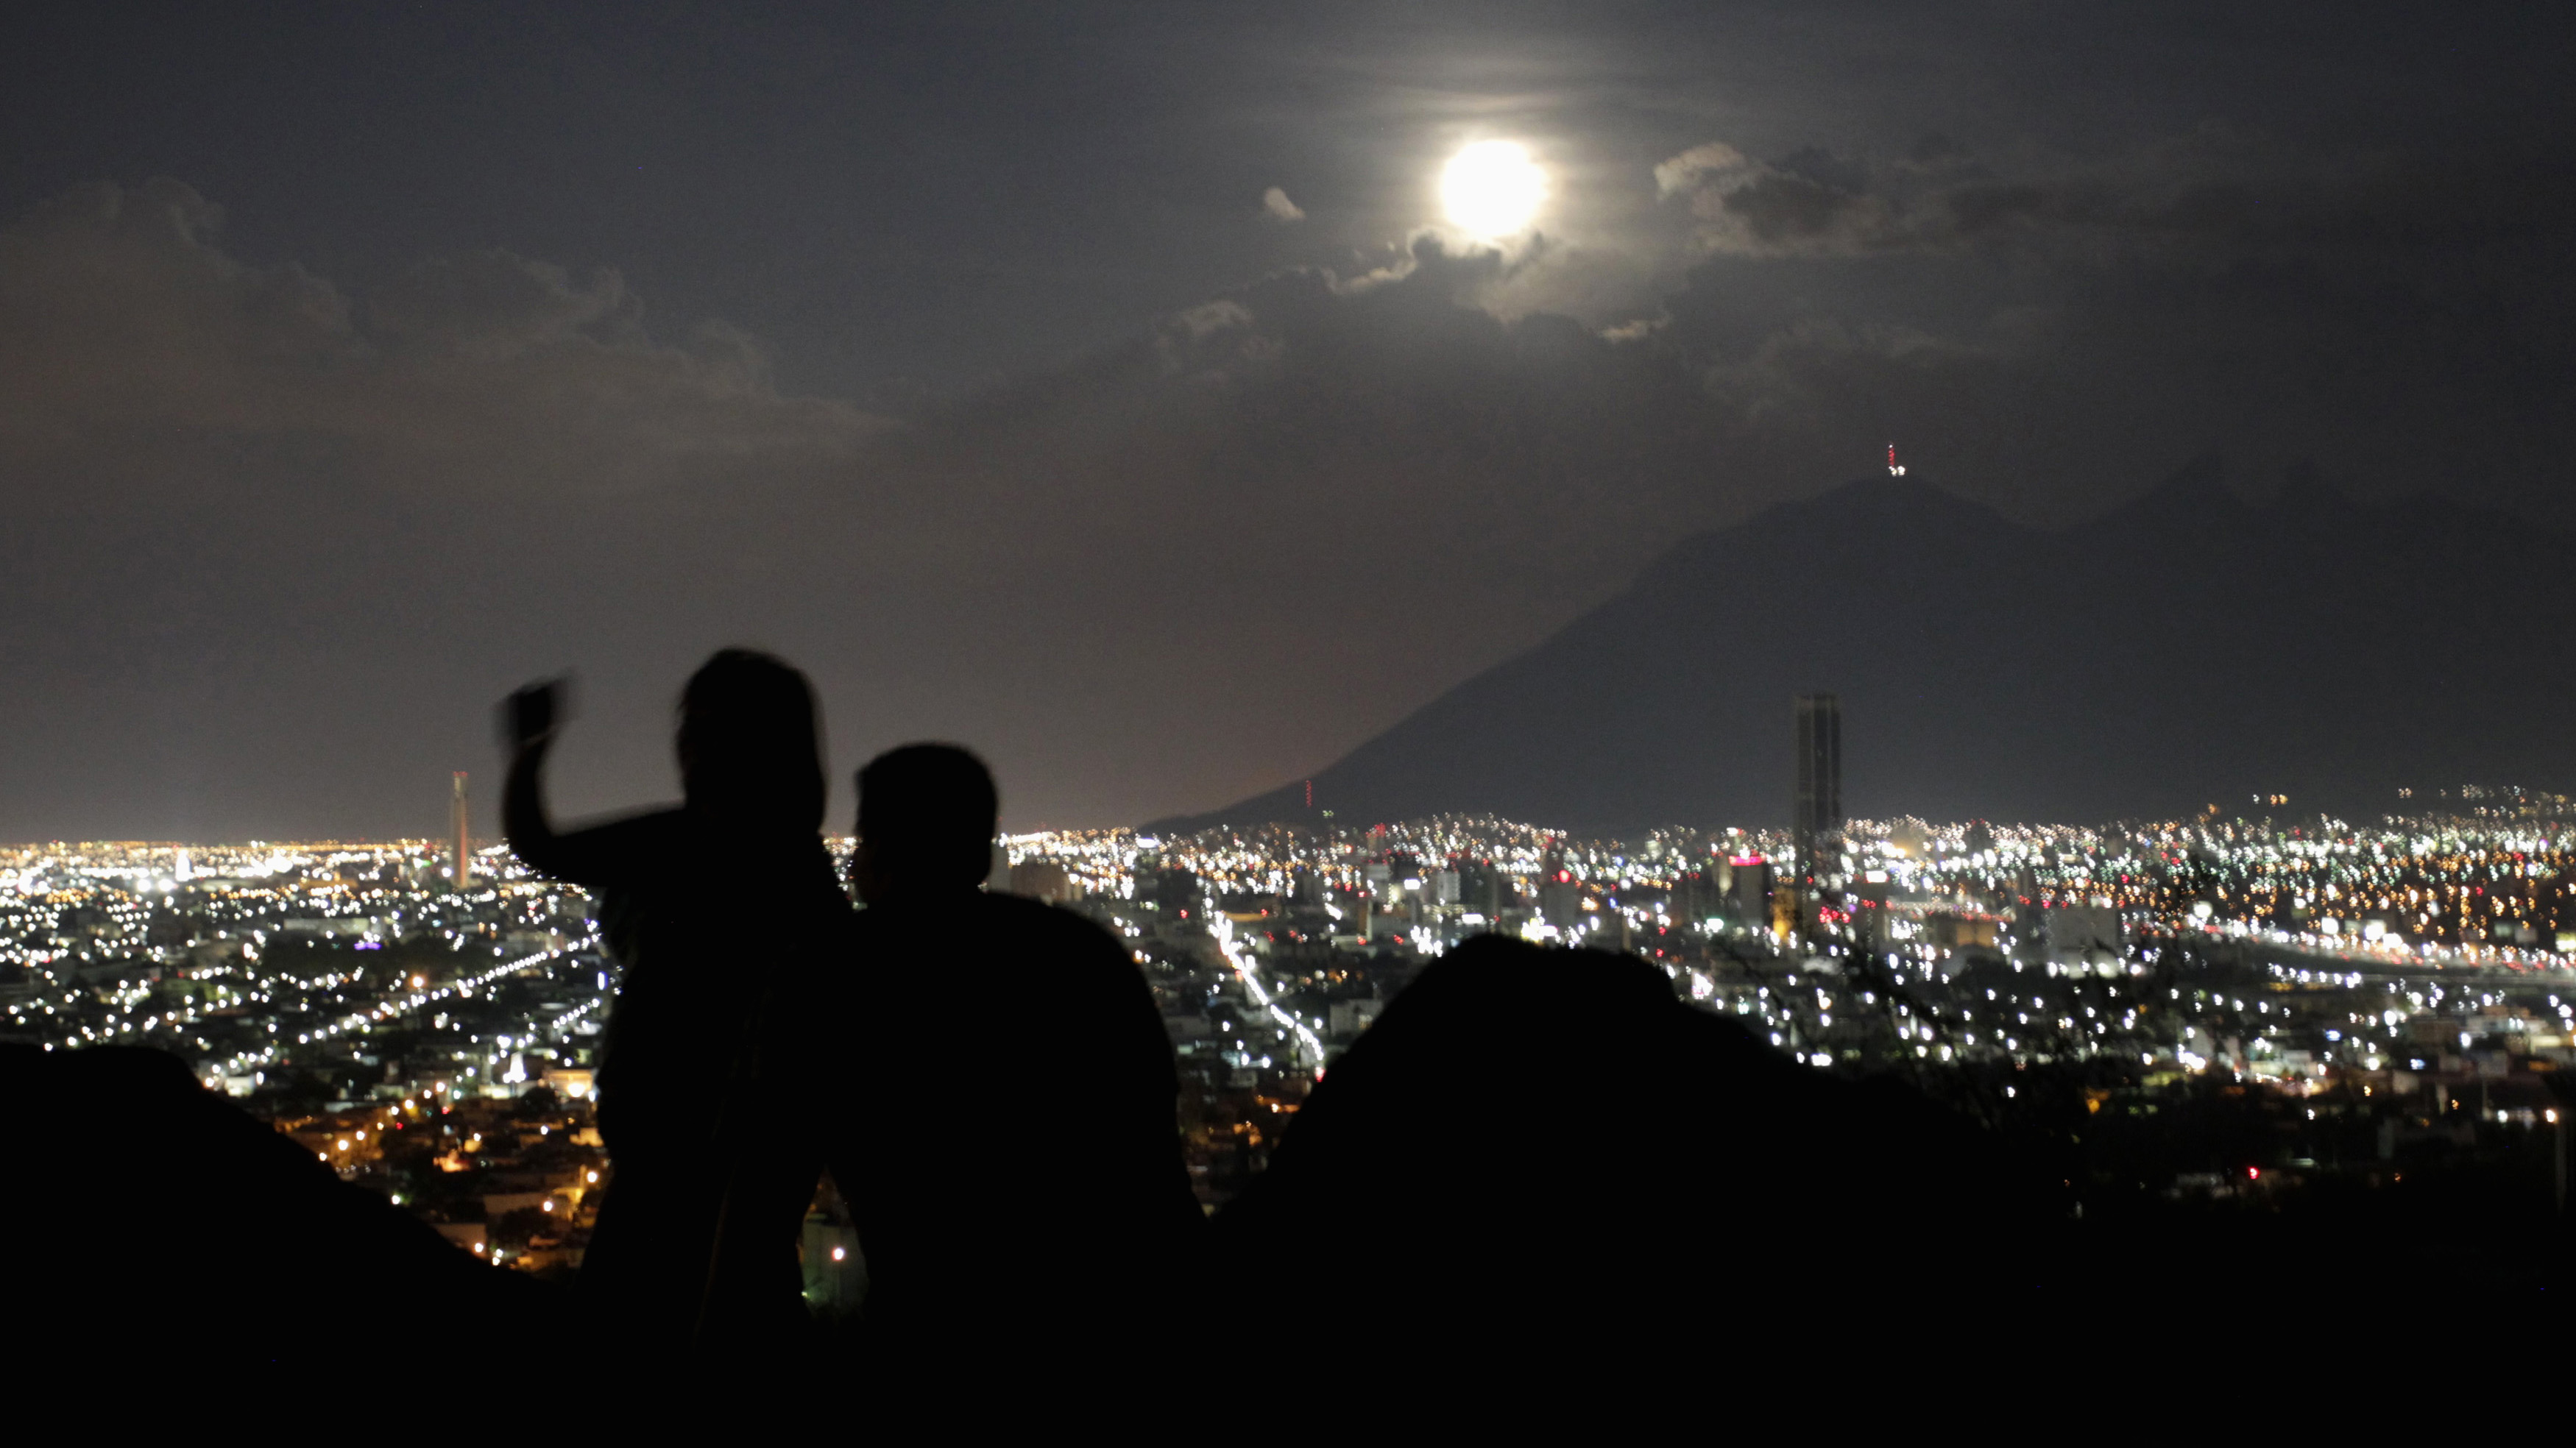 A supermoon rises while a couple takes a photo in Monterrey August 10, 2014. The astronomical event occurs when the moon is closest to the Earth in its orbit, making it appear much larger and brighter than usual. Reuters/Daniel Becerril (MEXICO - Tags: ENVIRONMENT SOCIETY TPX IMAGES OF THE DAY) - RTR41X1E